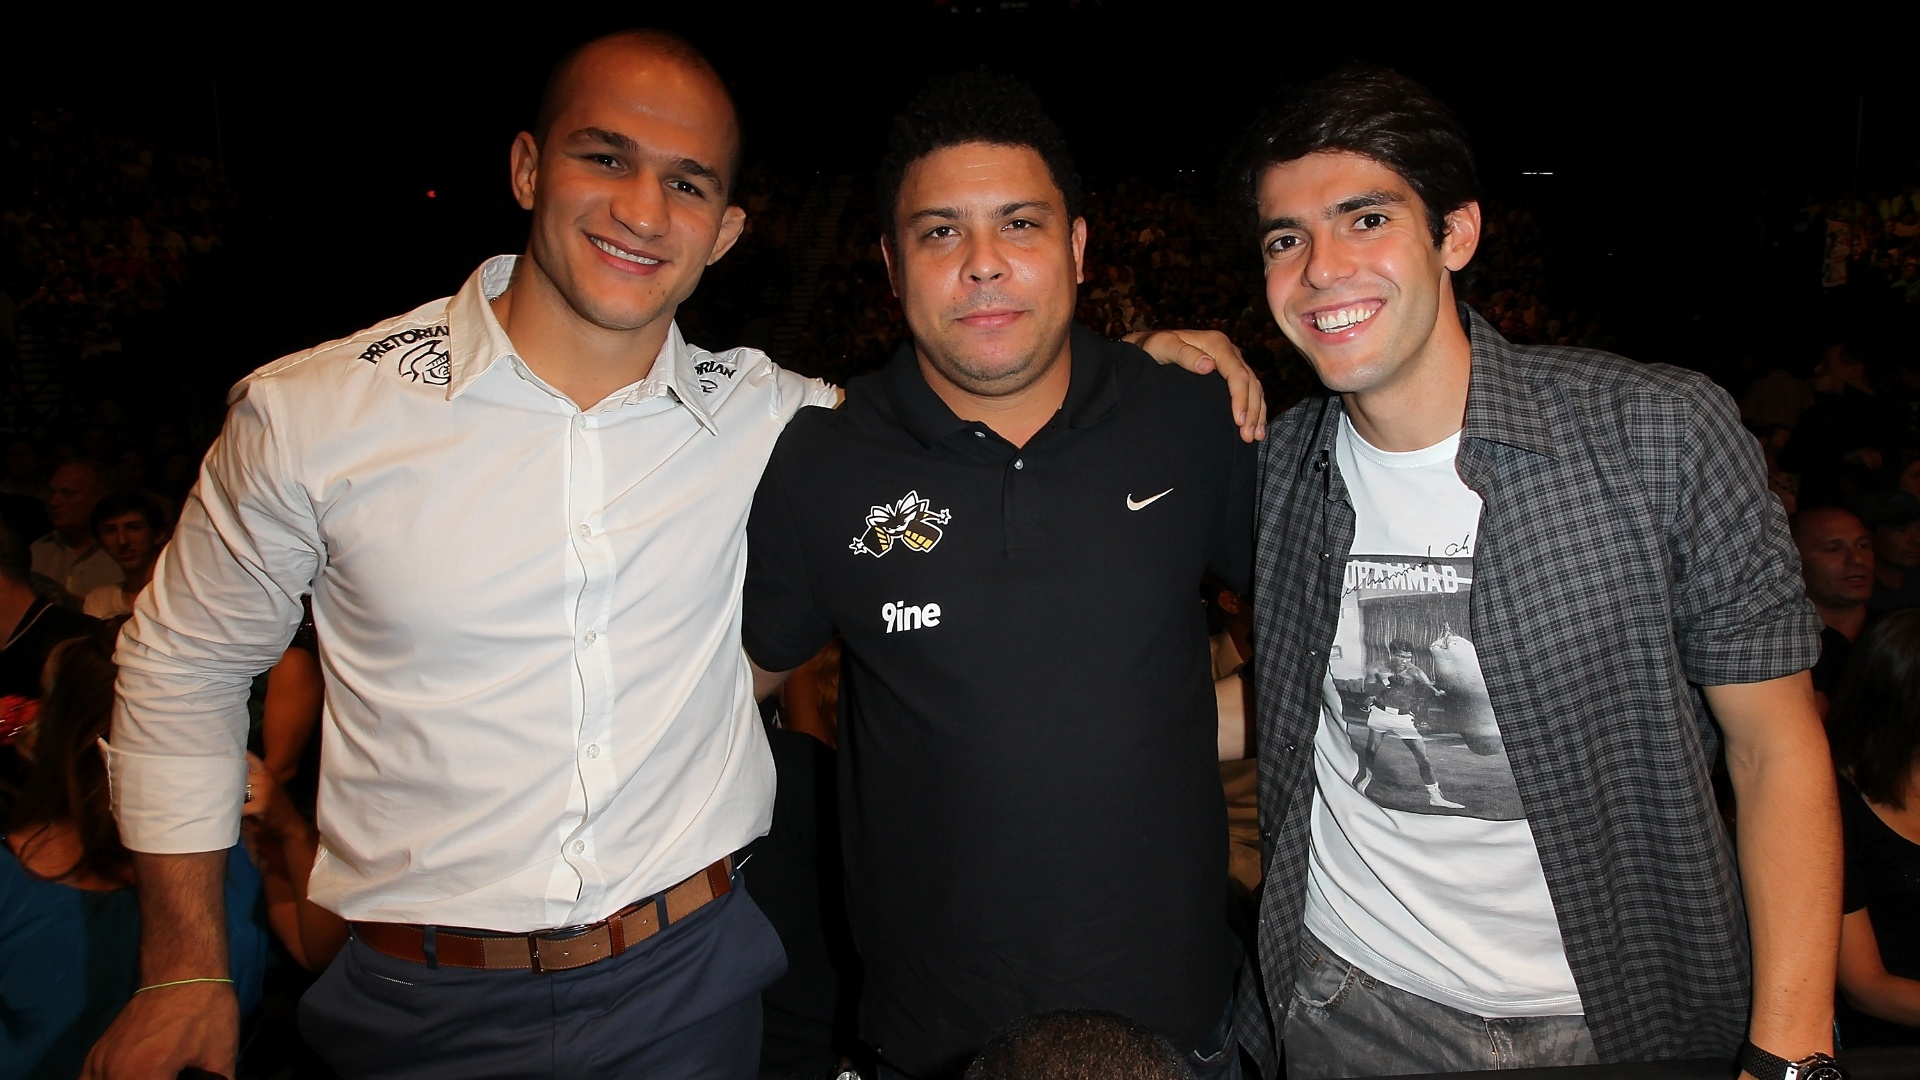 Junior Cigano, Ronaldo e Kak acompanharam a 10 defesa de cinturo de Anderson Silva 